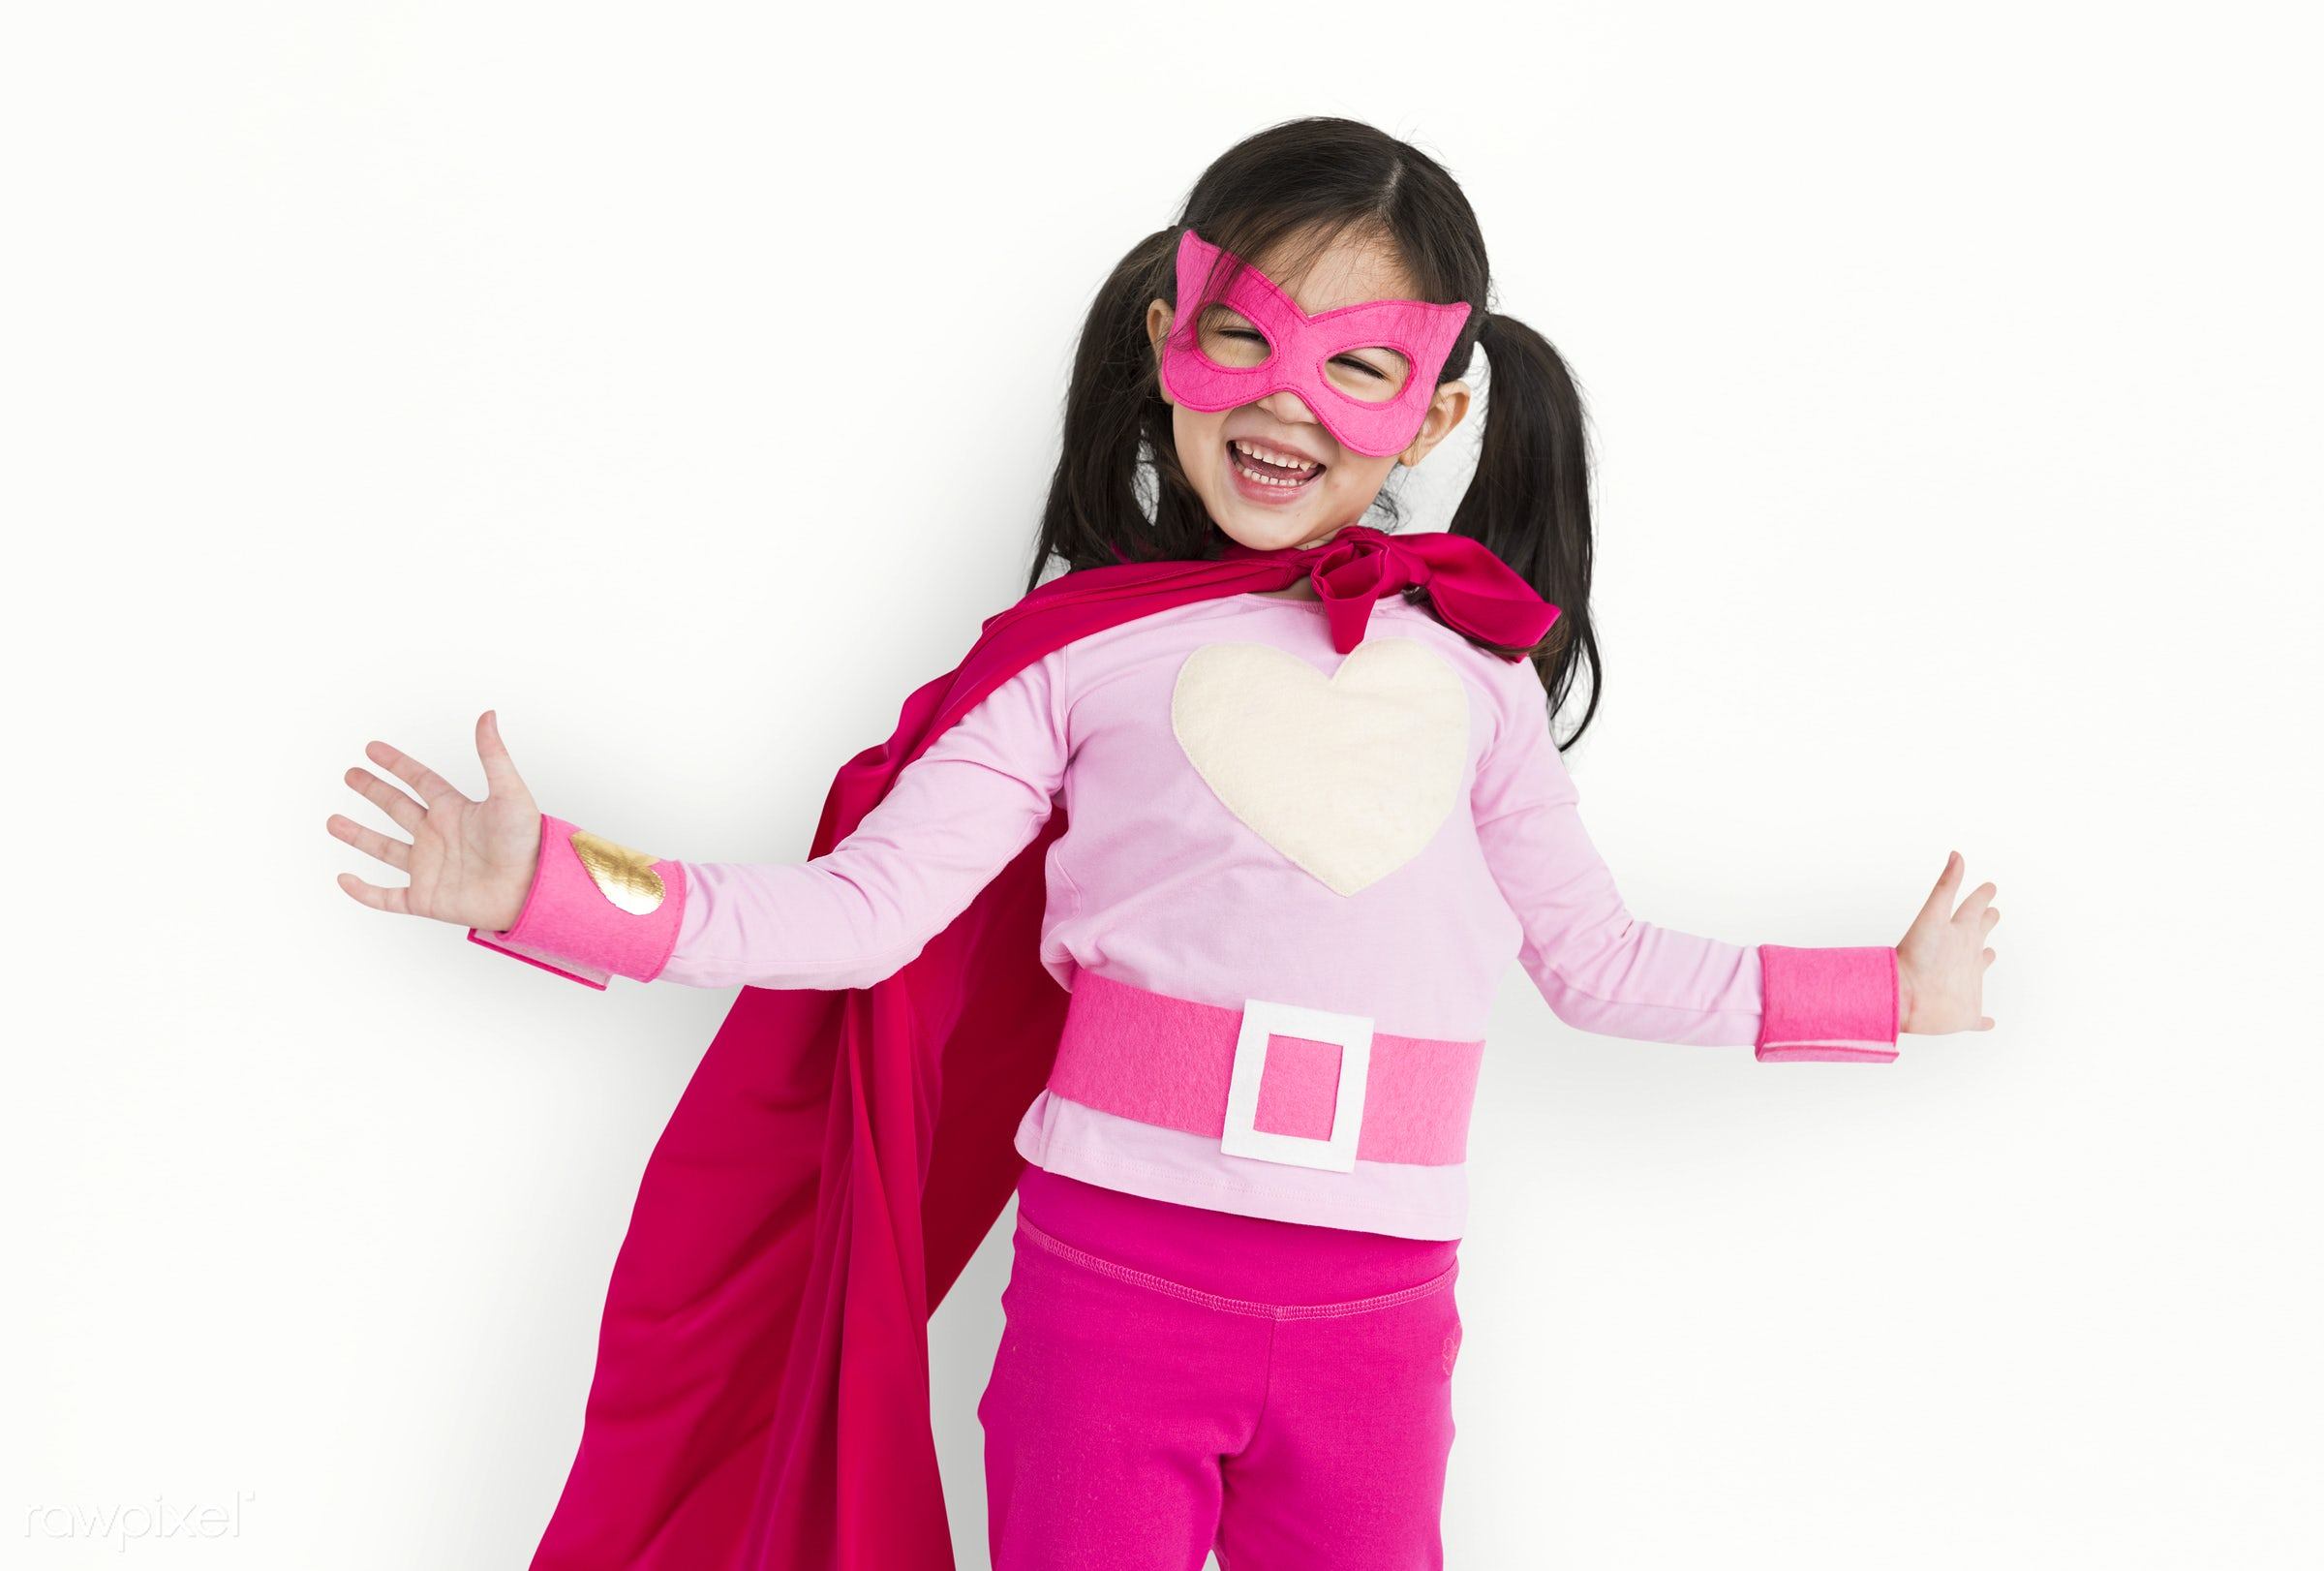 Young kids studio shoot - asian, child, expression, fun, girl, isolated, isolated on white, kid, playful, studio, superhero...